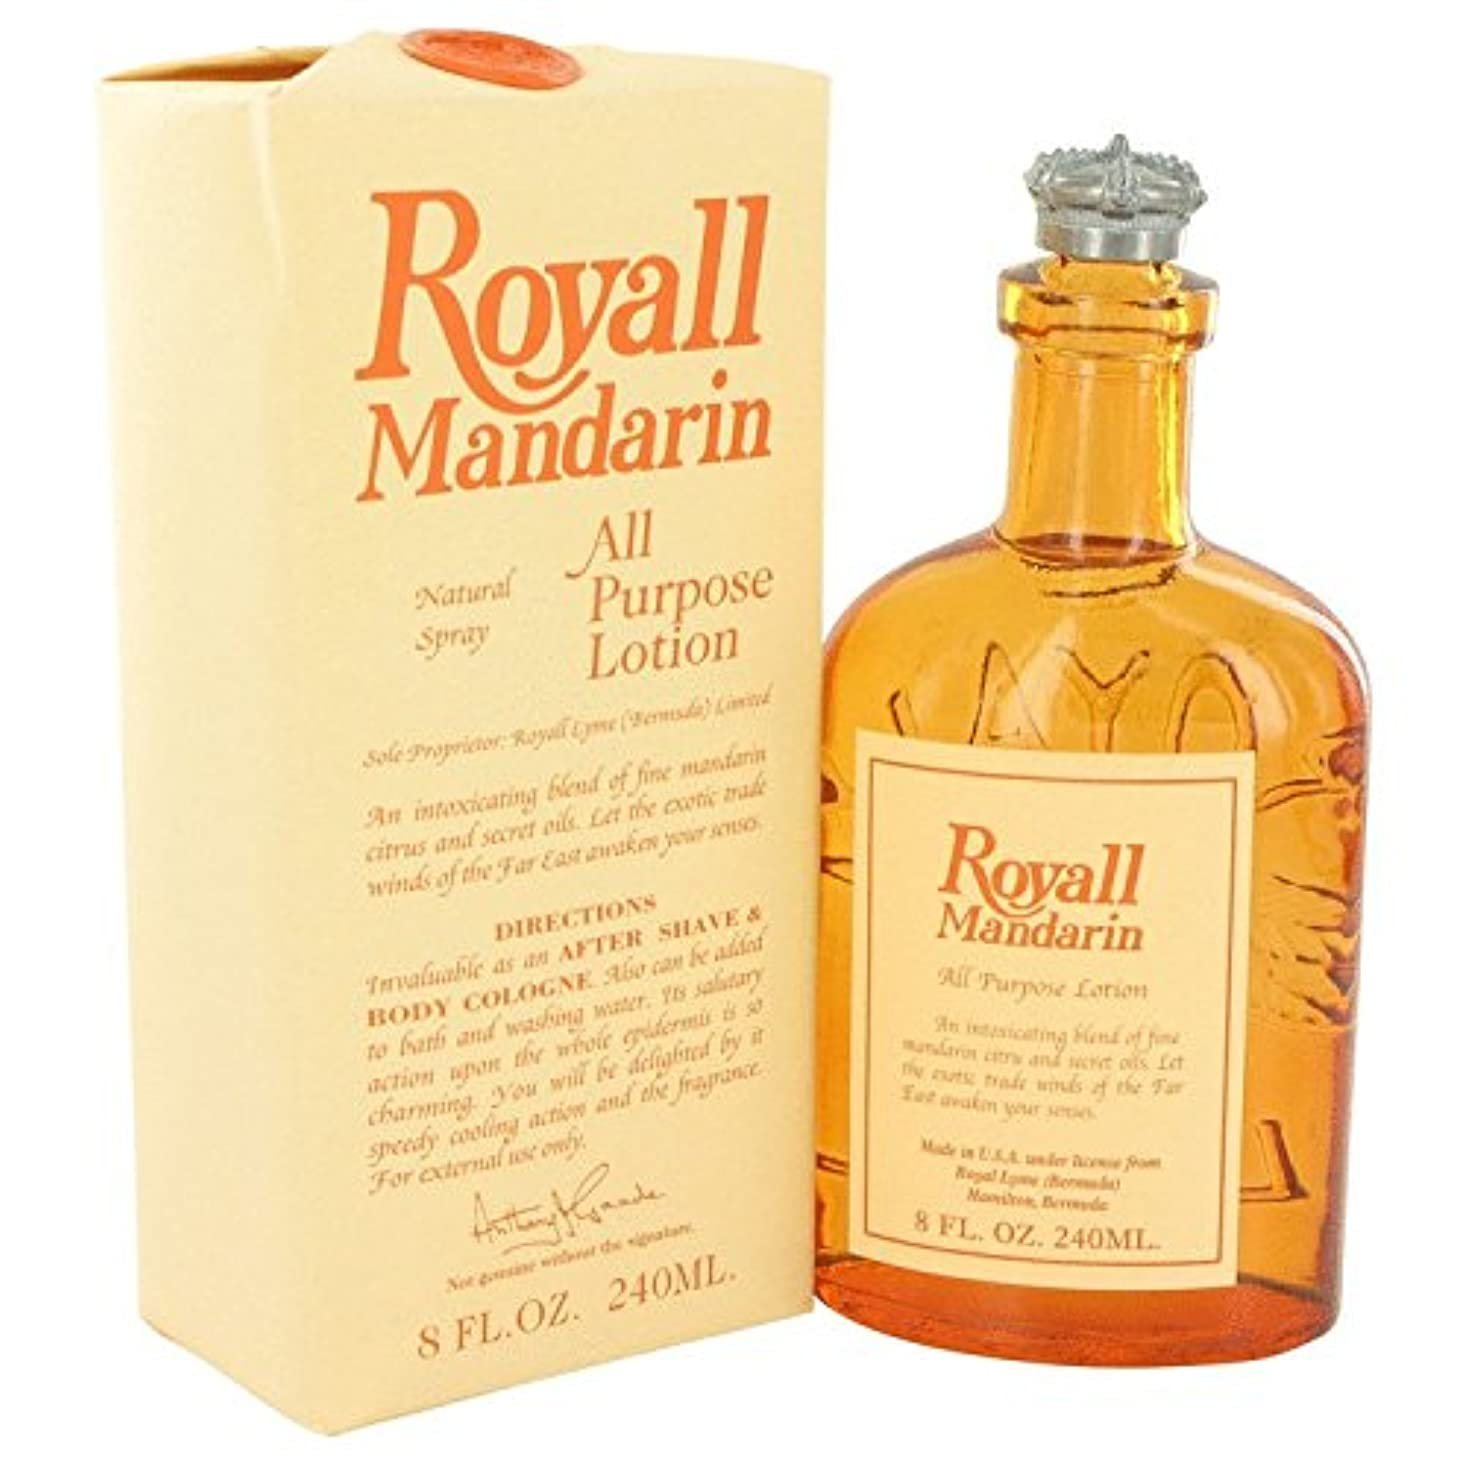 フィクションぎこちないコスチュームRoyall Lyme - Mandarin - All Purpose Lotion Spray - 240ml 8fl.oz